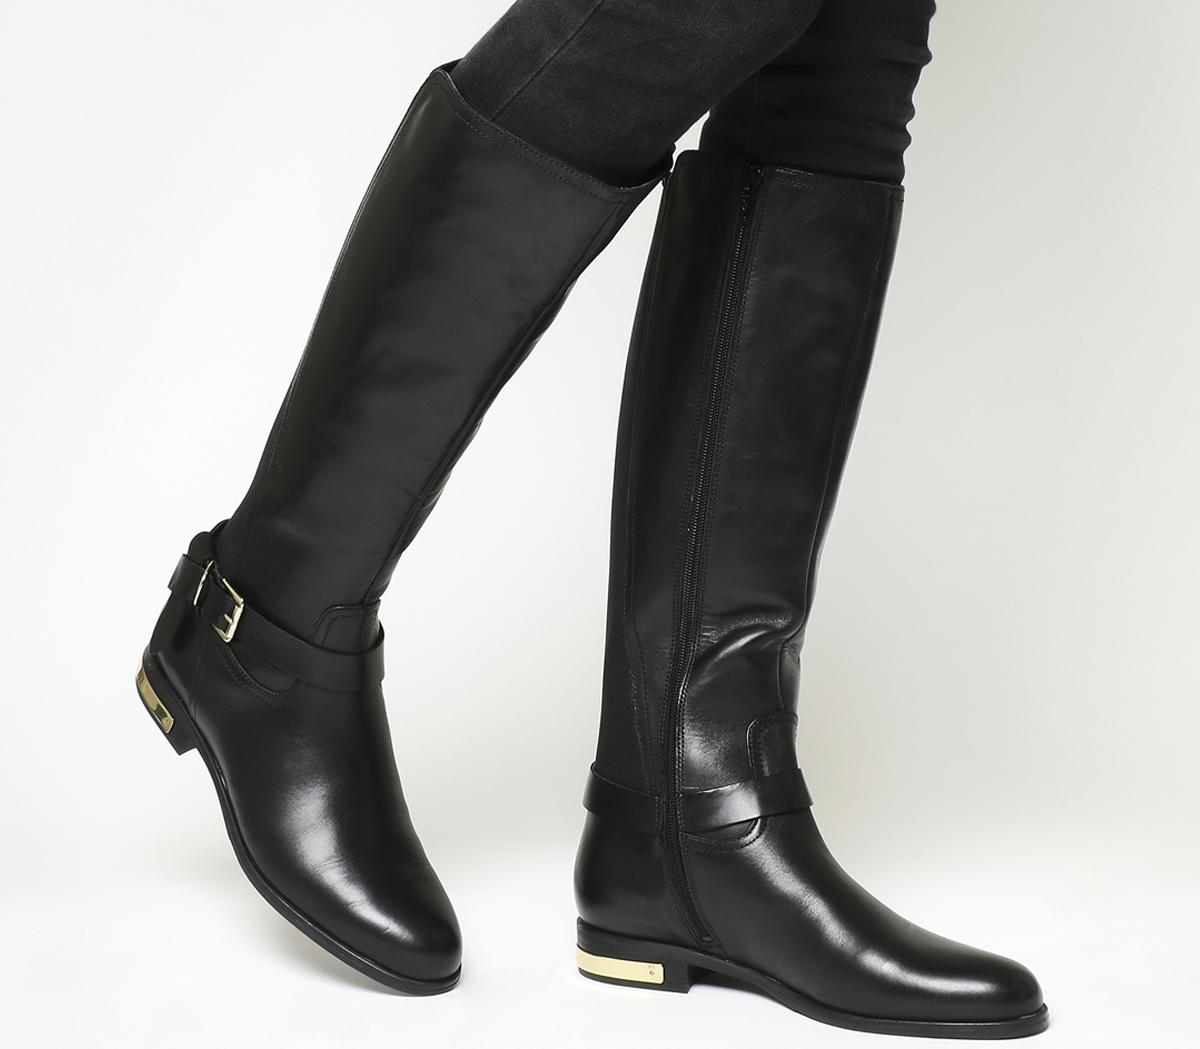 Knightly Riding Boot Black Leather